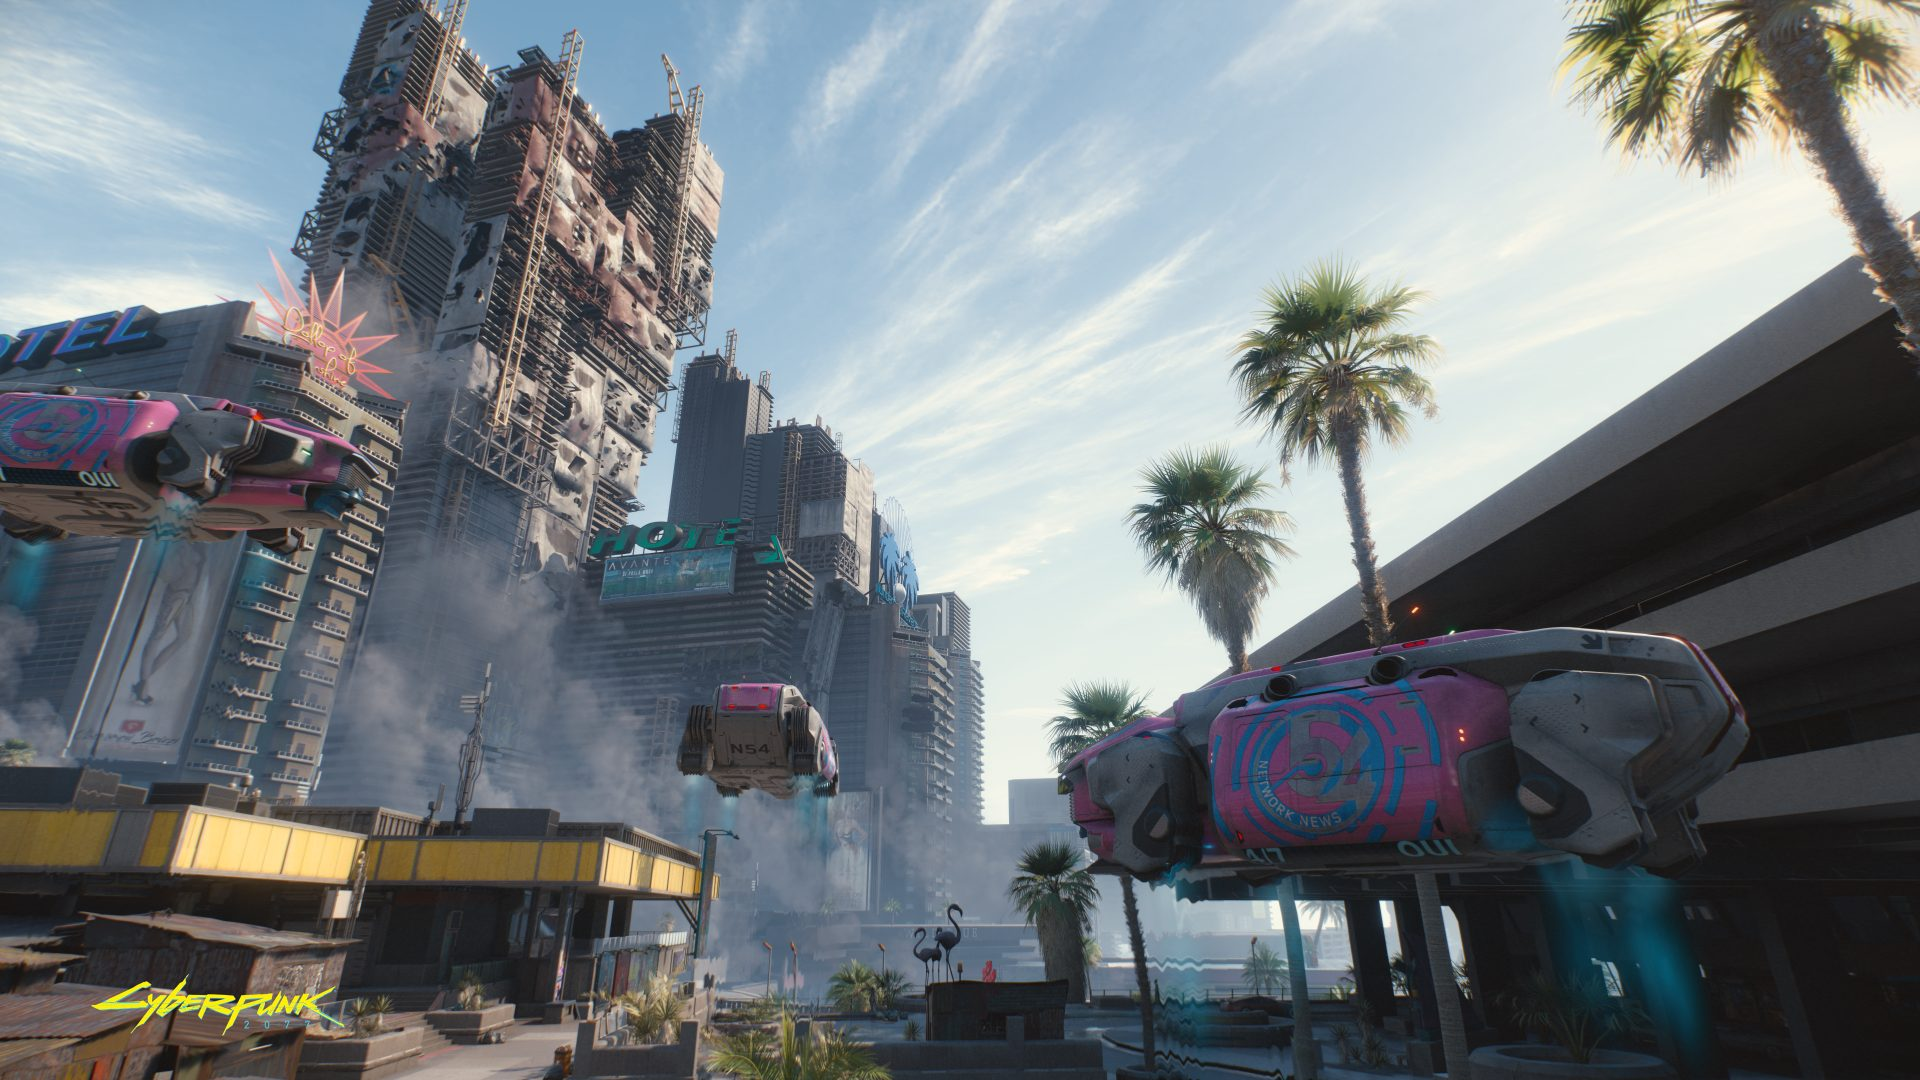 Cyberpunk2077 Hope you arent afraid of heights en